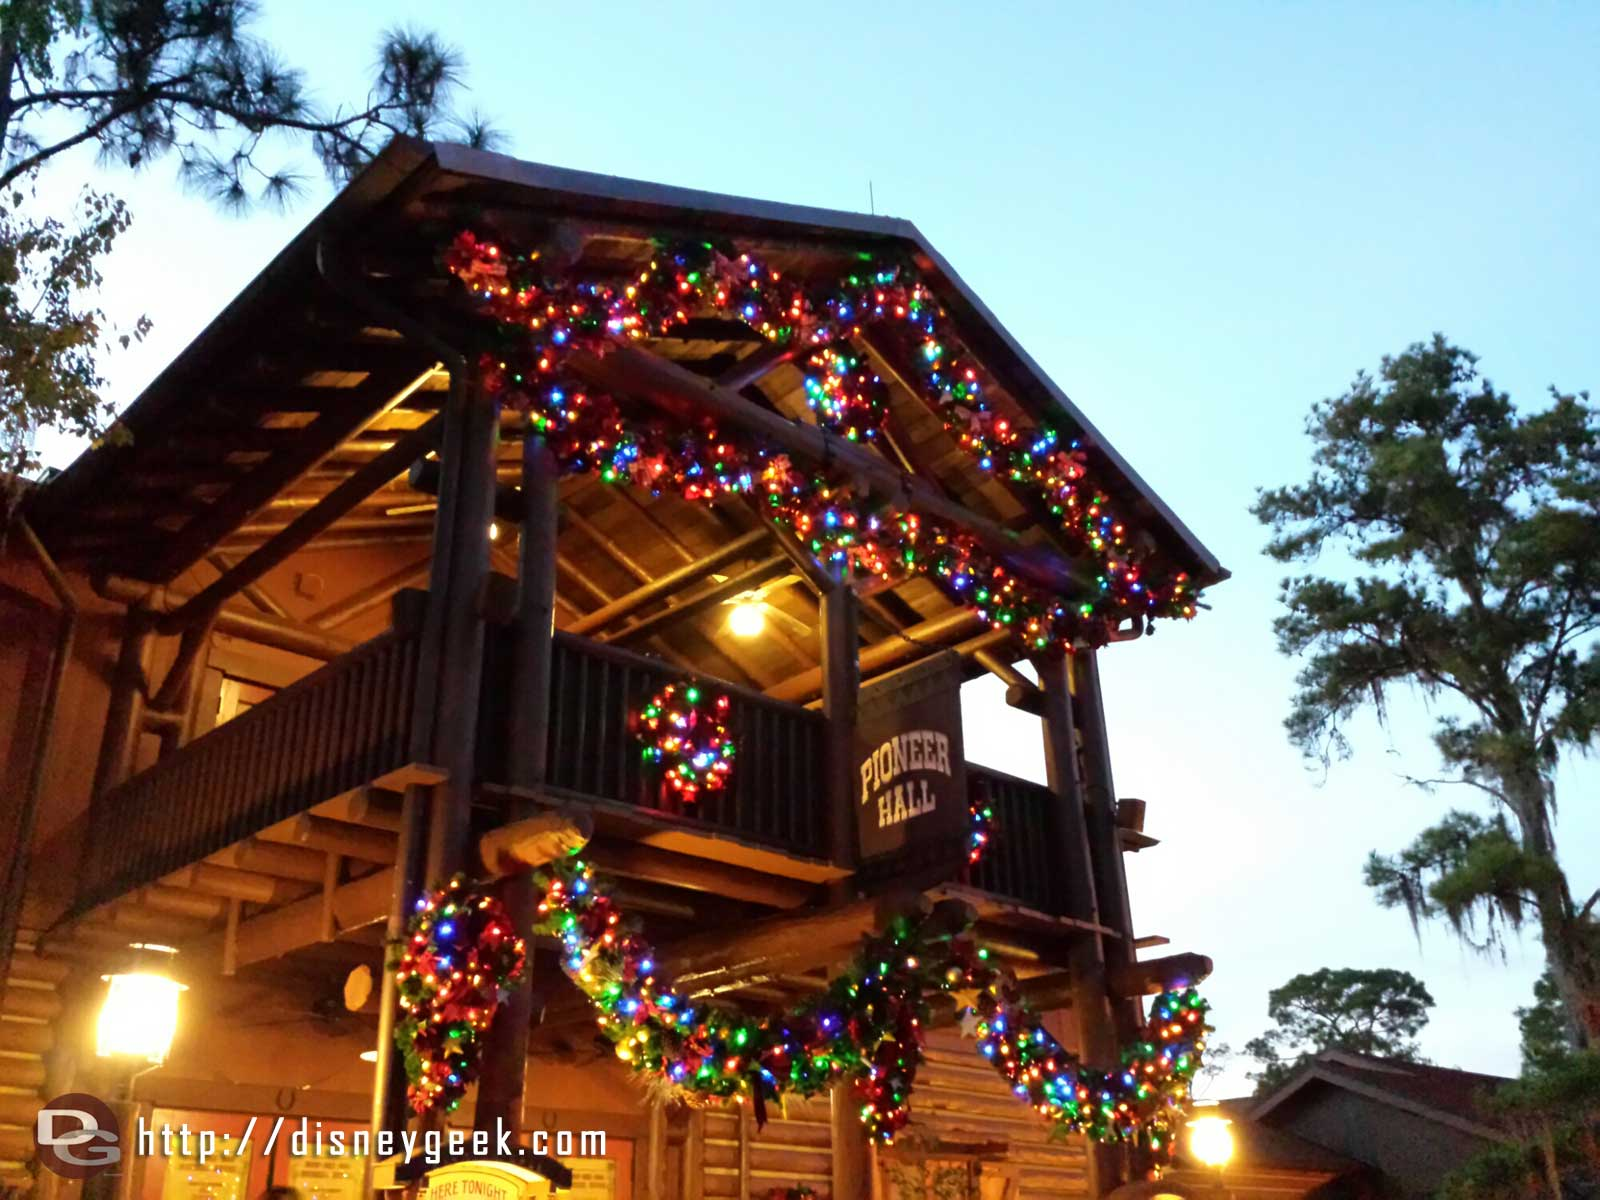 Pioneer Hall Christmas Lights – Fort Wilderness